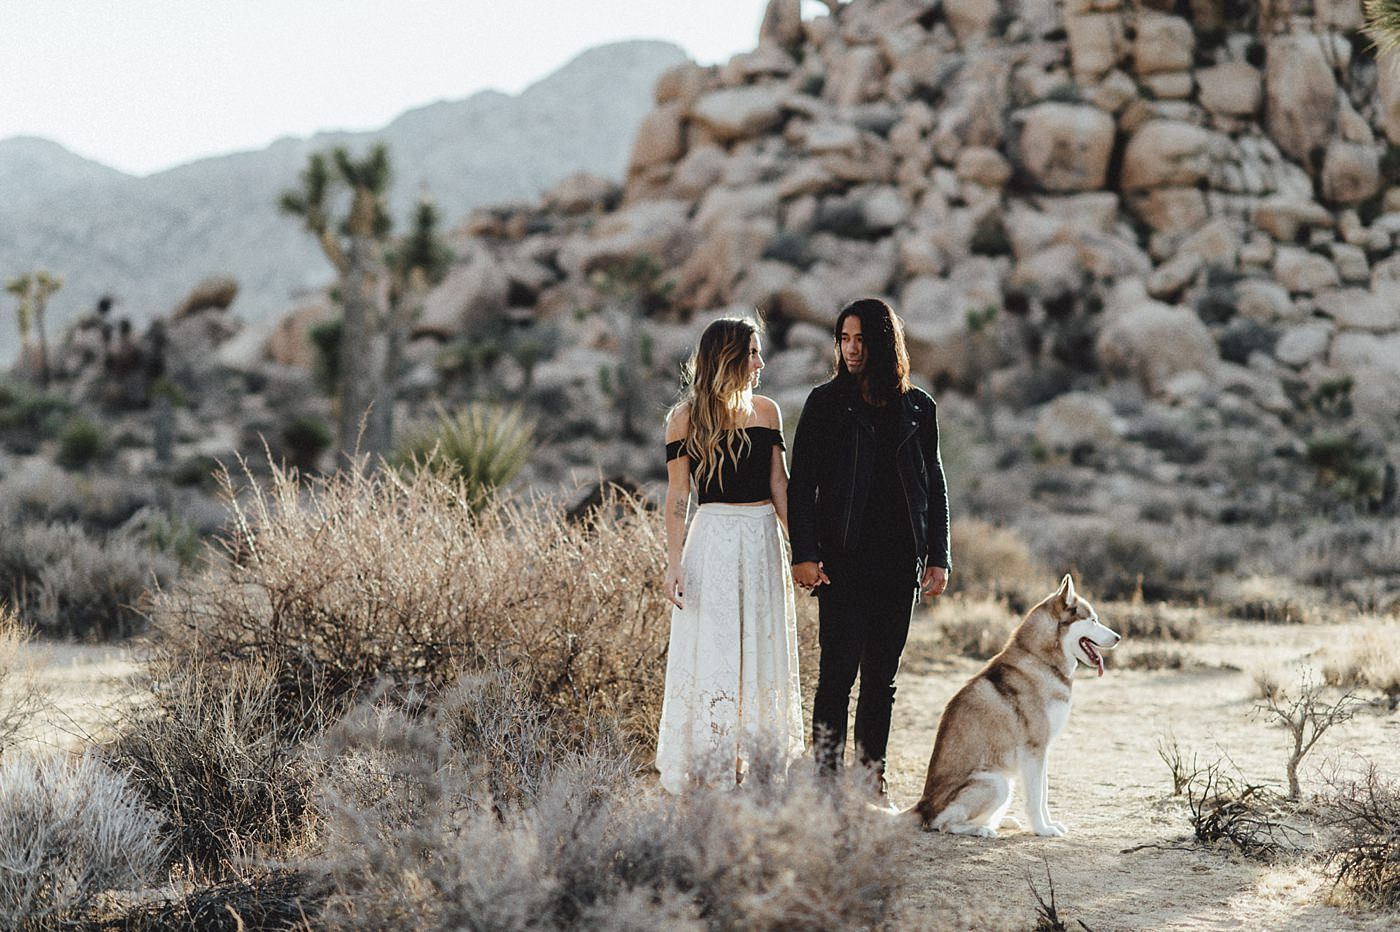 international-elopement-photographer_0164 Kinsey & Josh & Banjo Photographer in Joshuatreeinternational elopement photographer 0164